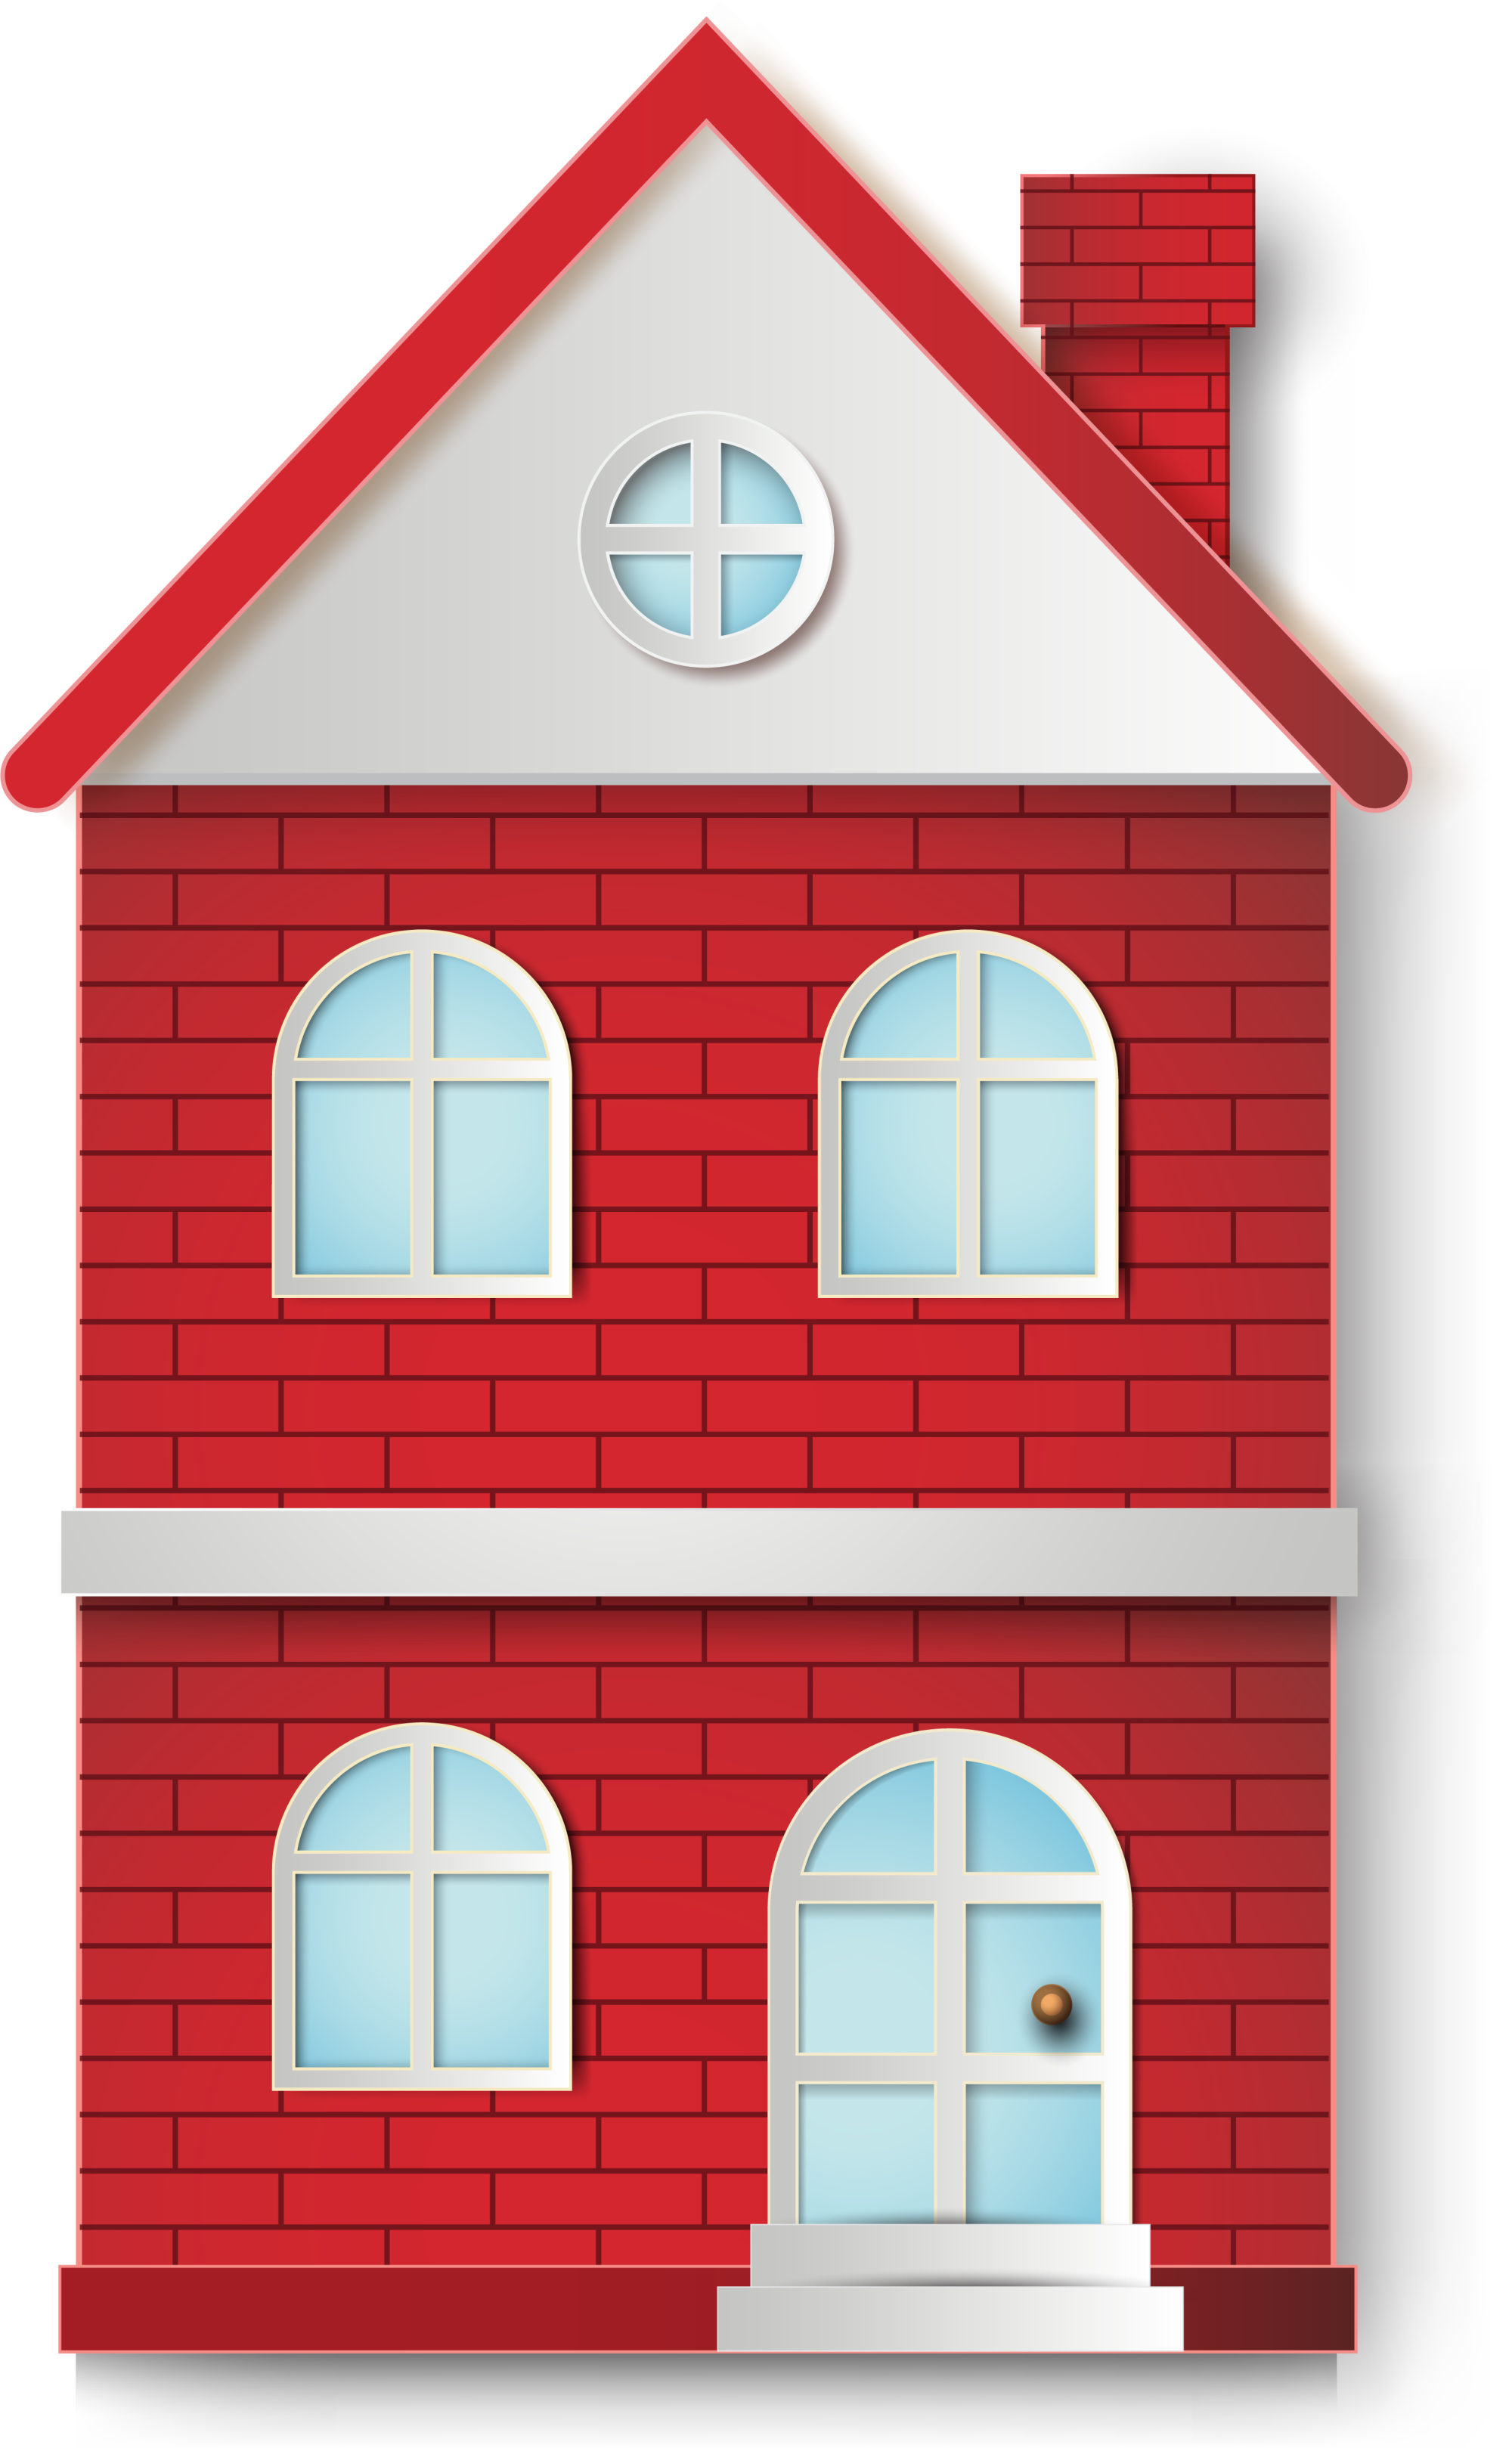 Villa red cartoon transprent. Home clipart brick house